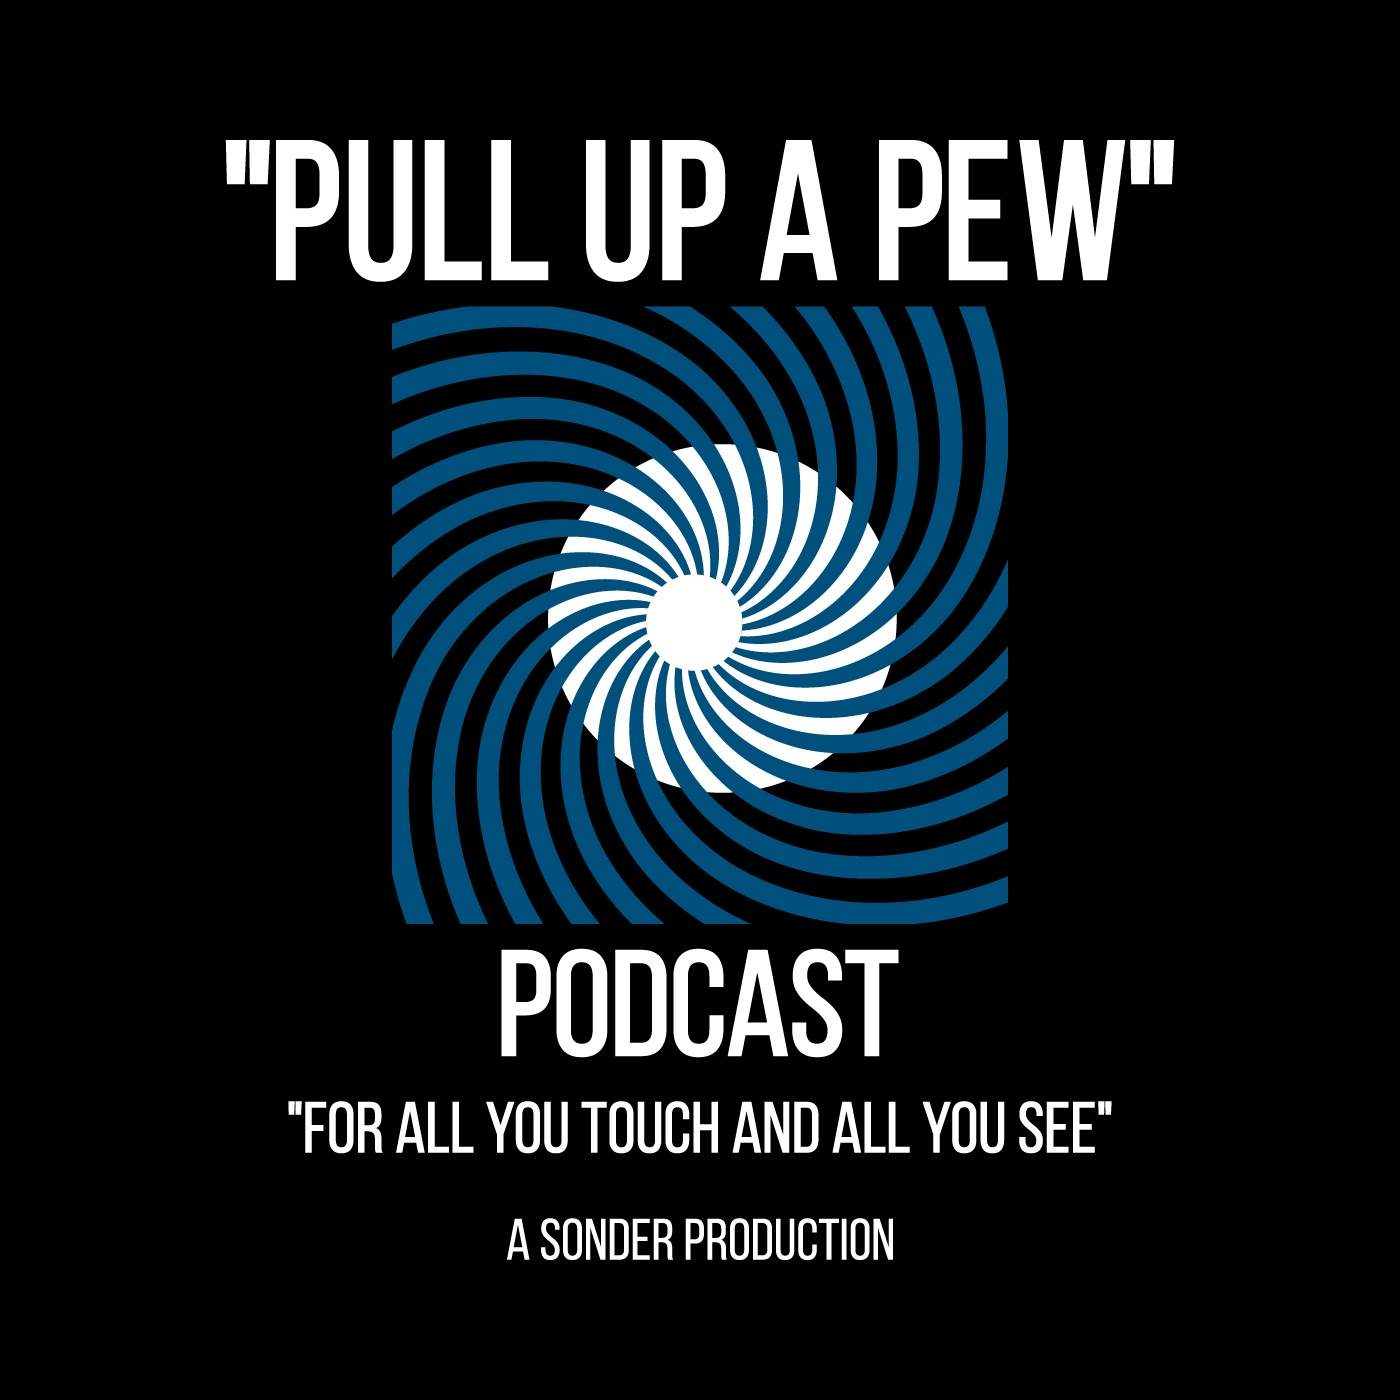 Pull up a pew podcast